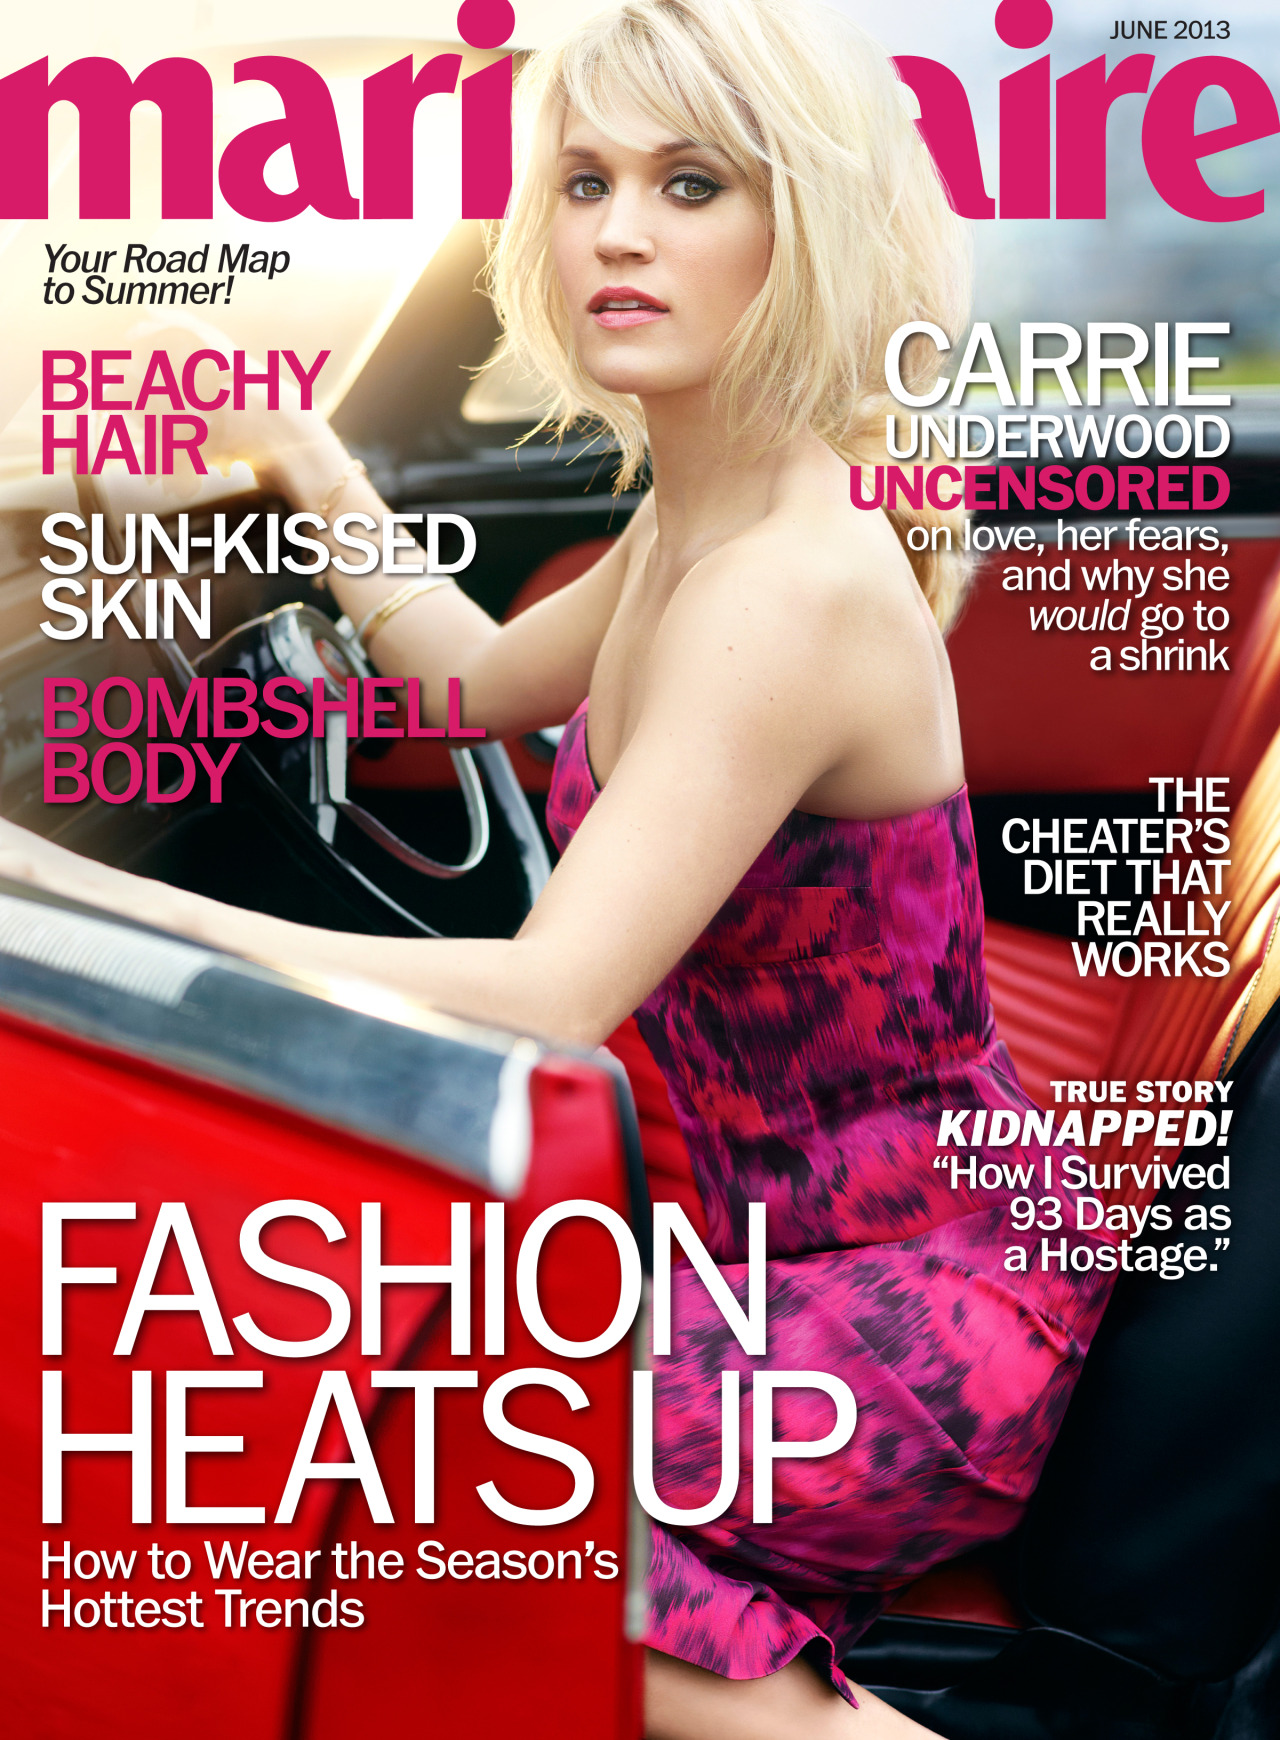 MARIE CLAIRE - JUNE 2013 (Carrie Underwood)